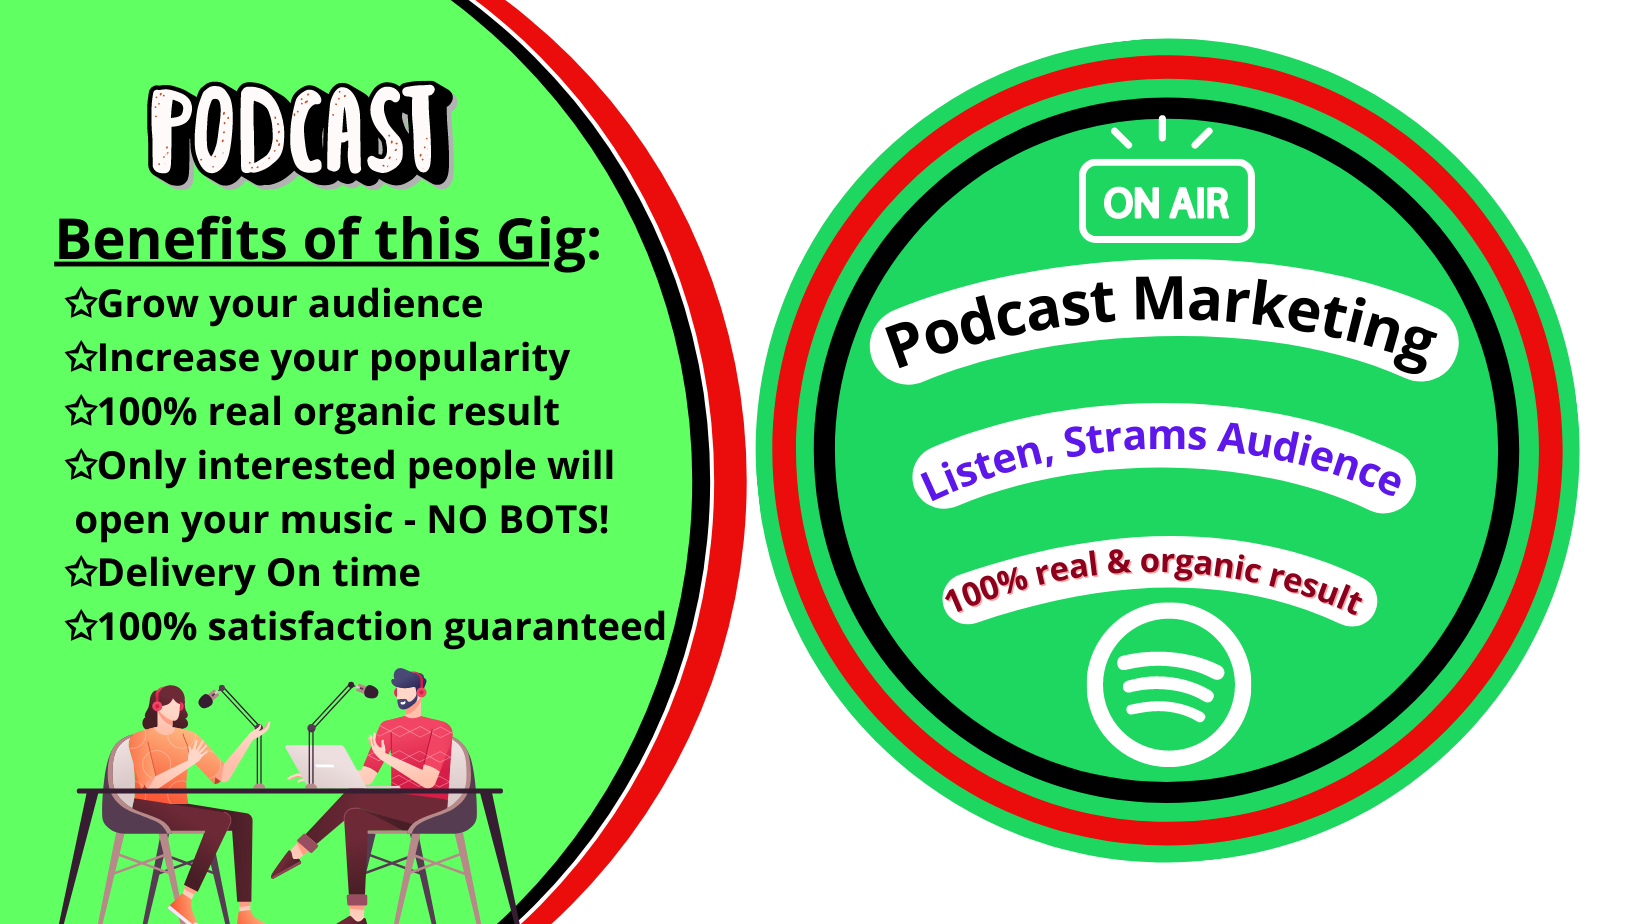 Advertising and promote your podcast to more targeted listens and audiences